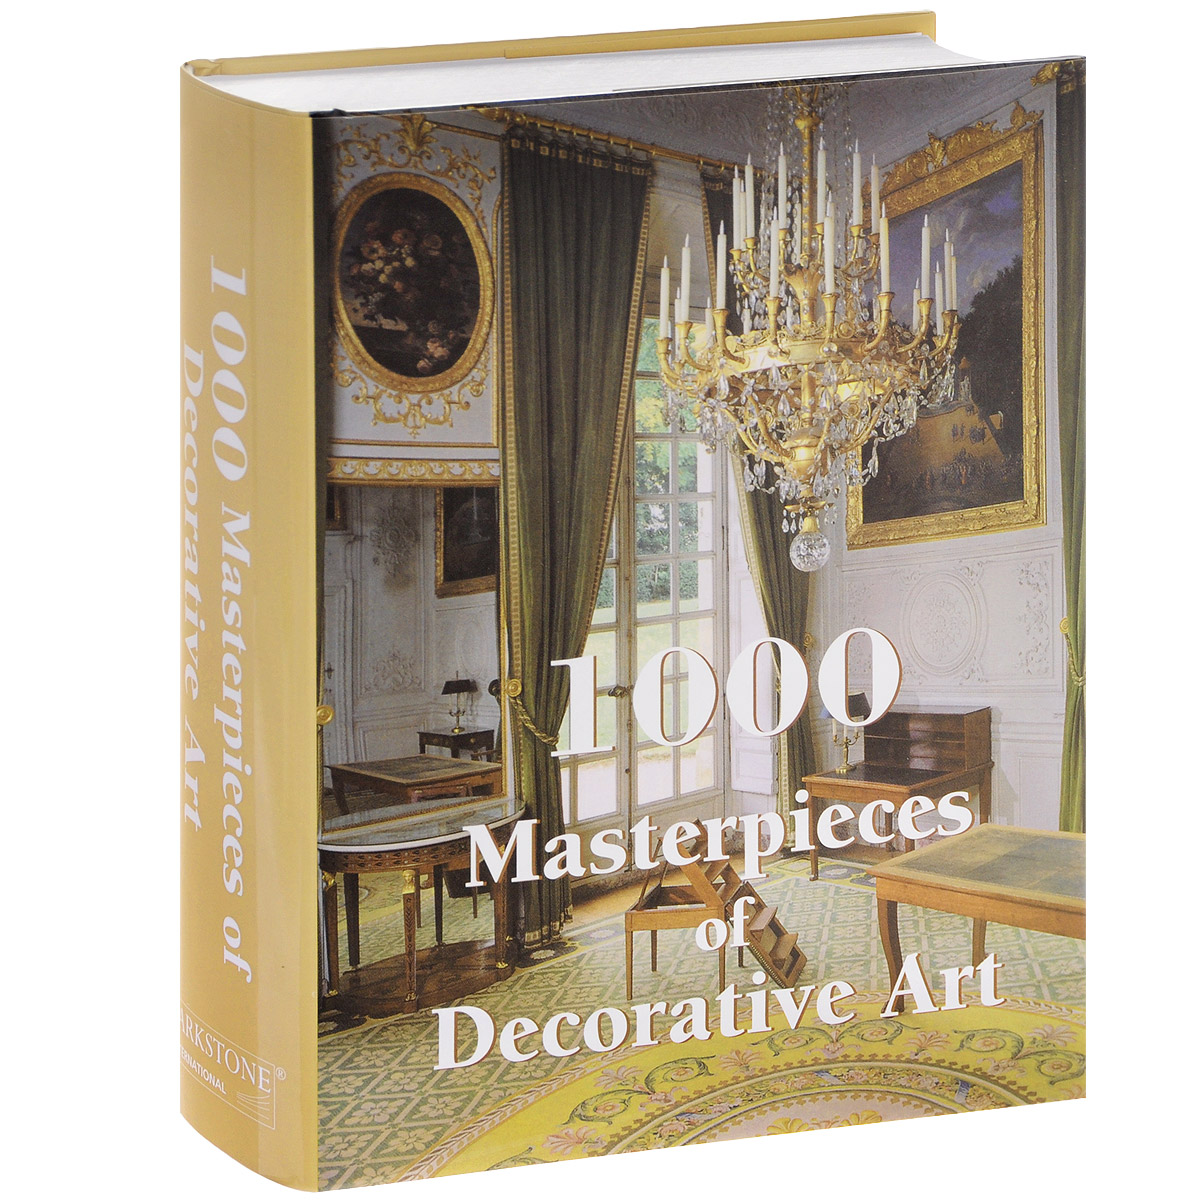 1000 Masterpieces of Decorative Art the art of battlefield 1